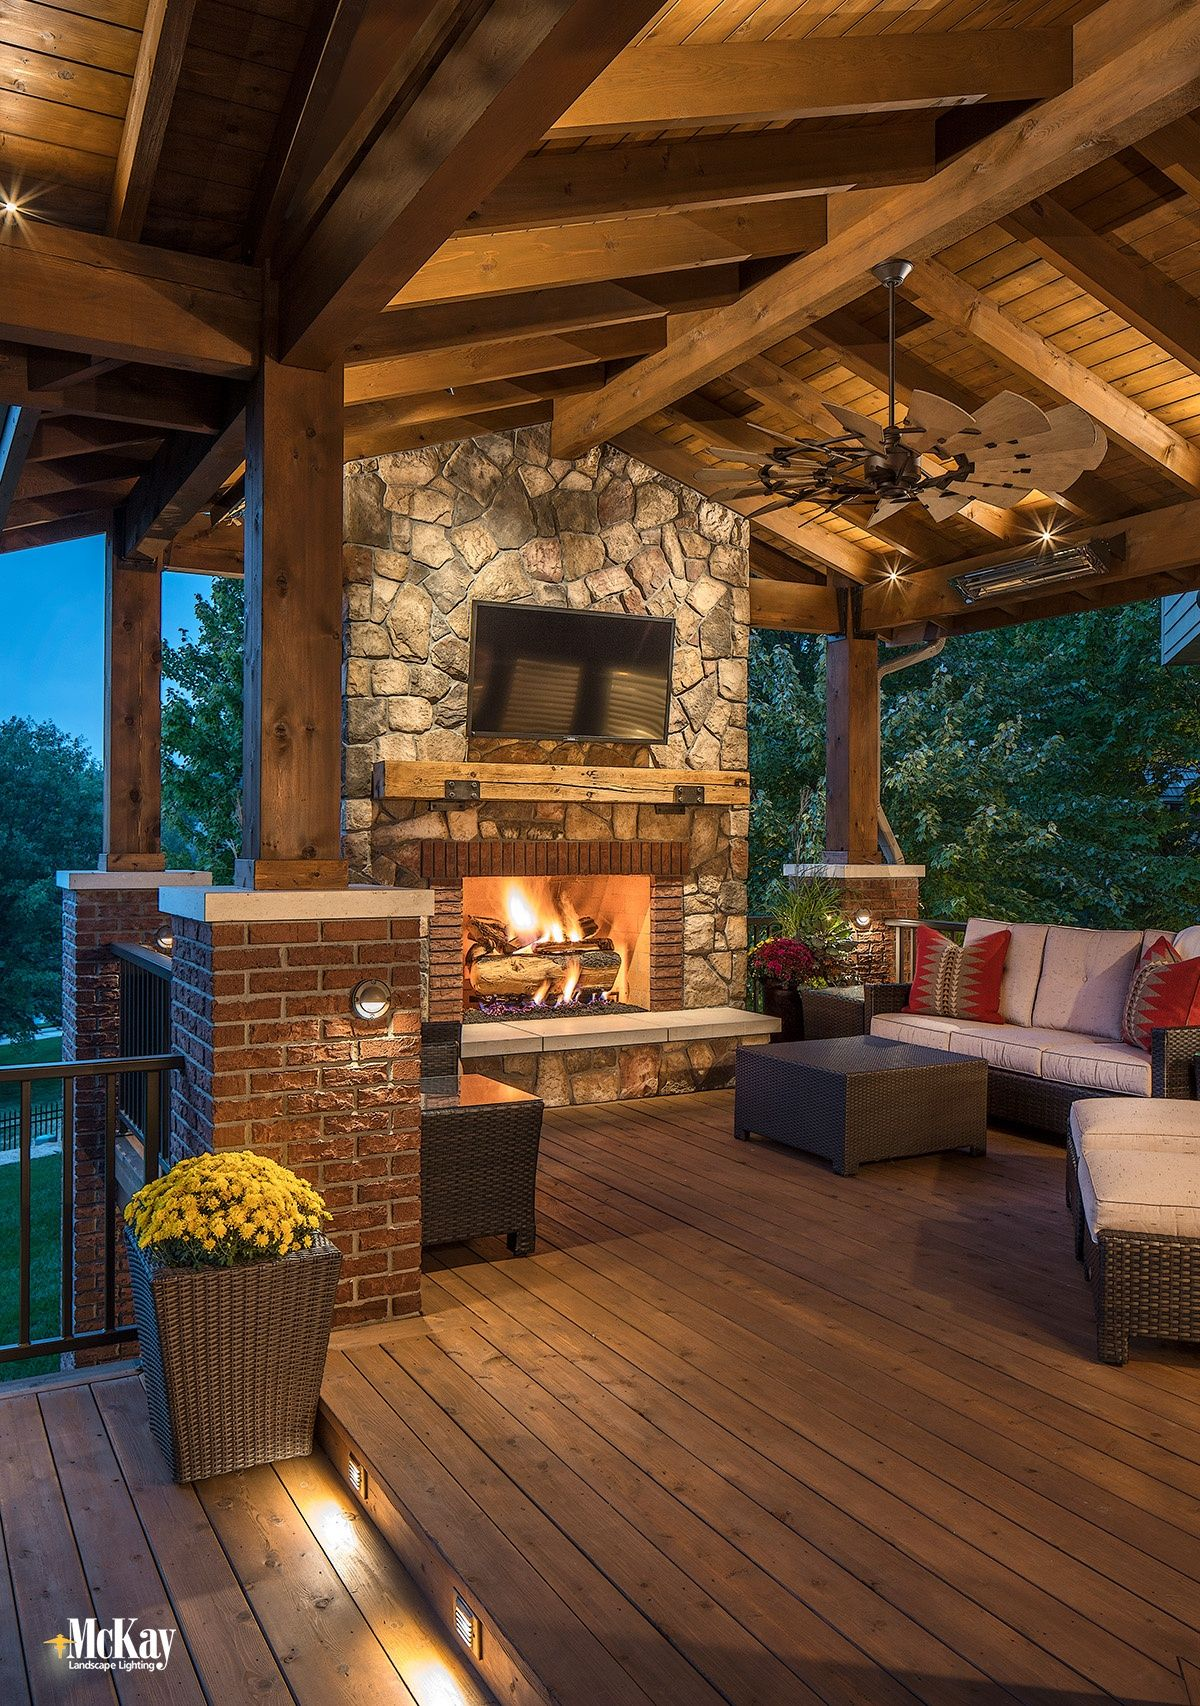 An Omaha Deck Patio Gets A Landscape Lighting Refresh Outdoor Covered Patio Patio Outdoor Kitchen Patio